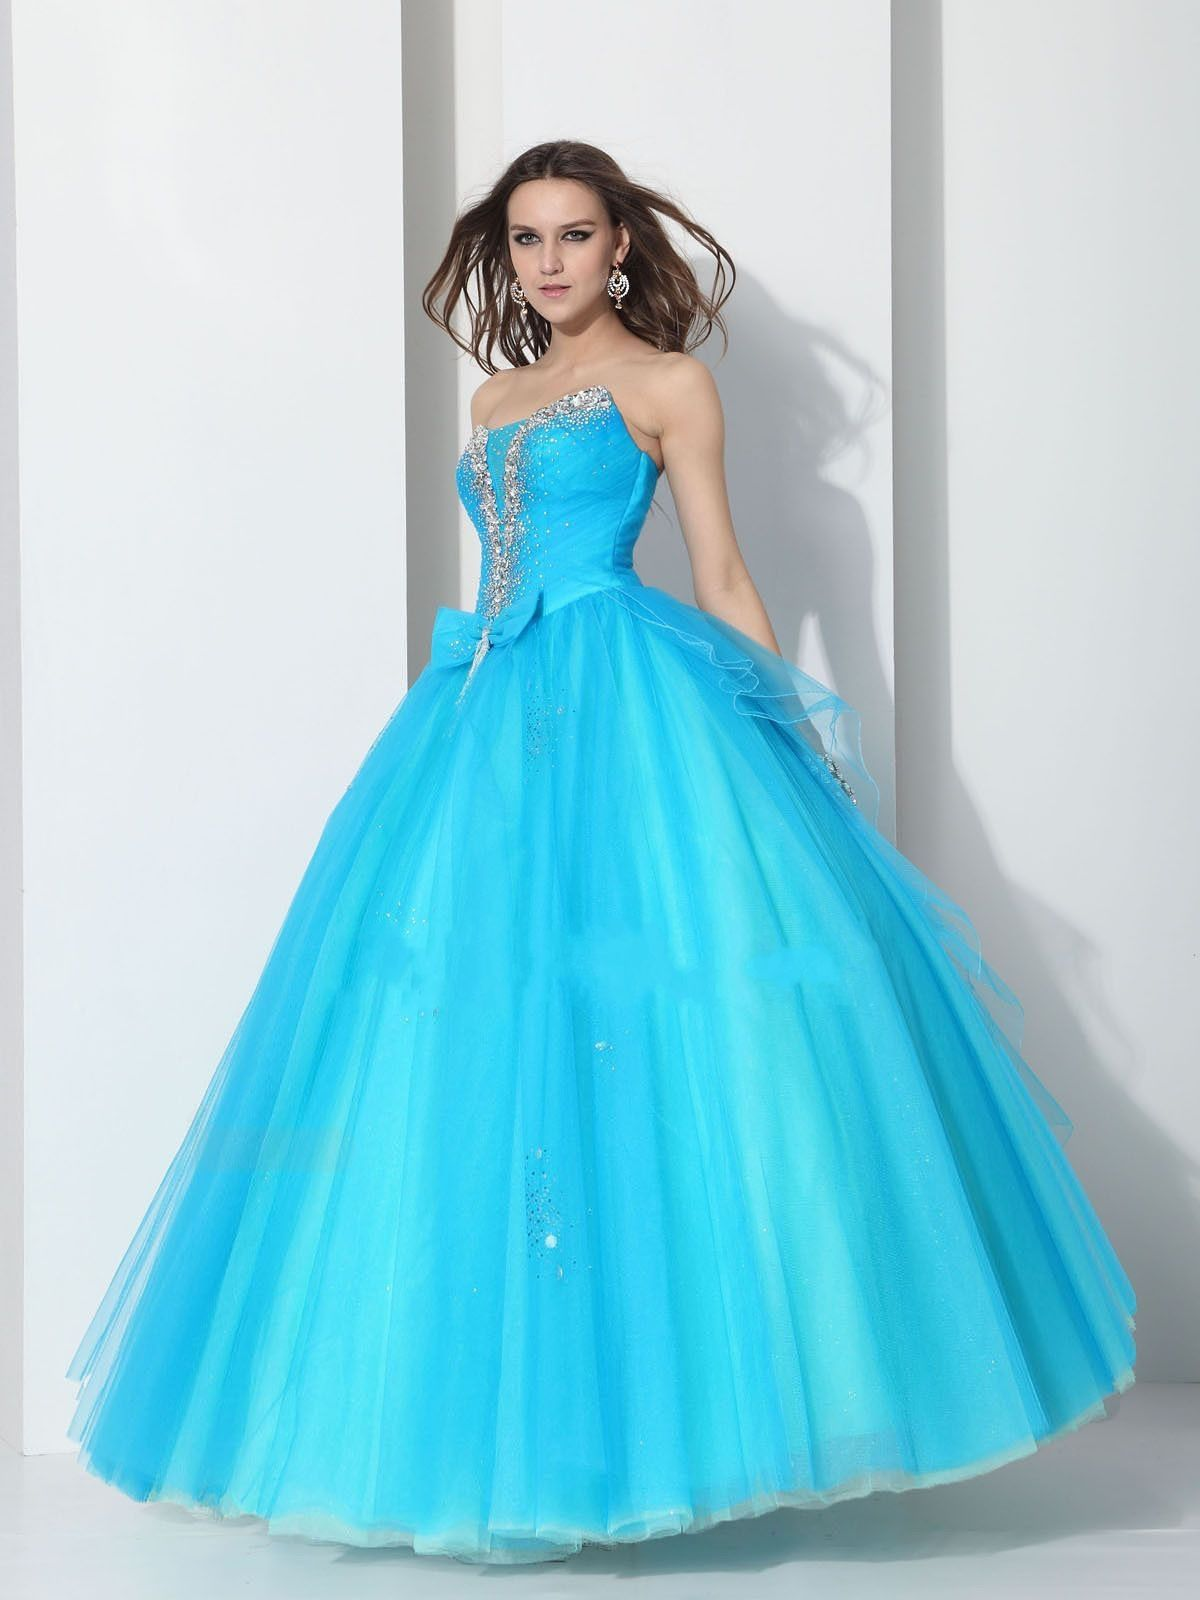 Tulle Ball Gown Beading Prom Dress for Ladies | Prom Dresses ...